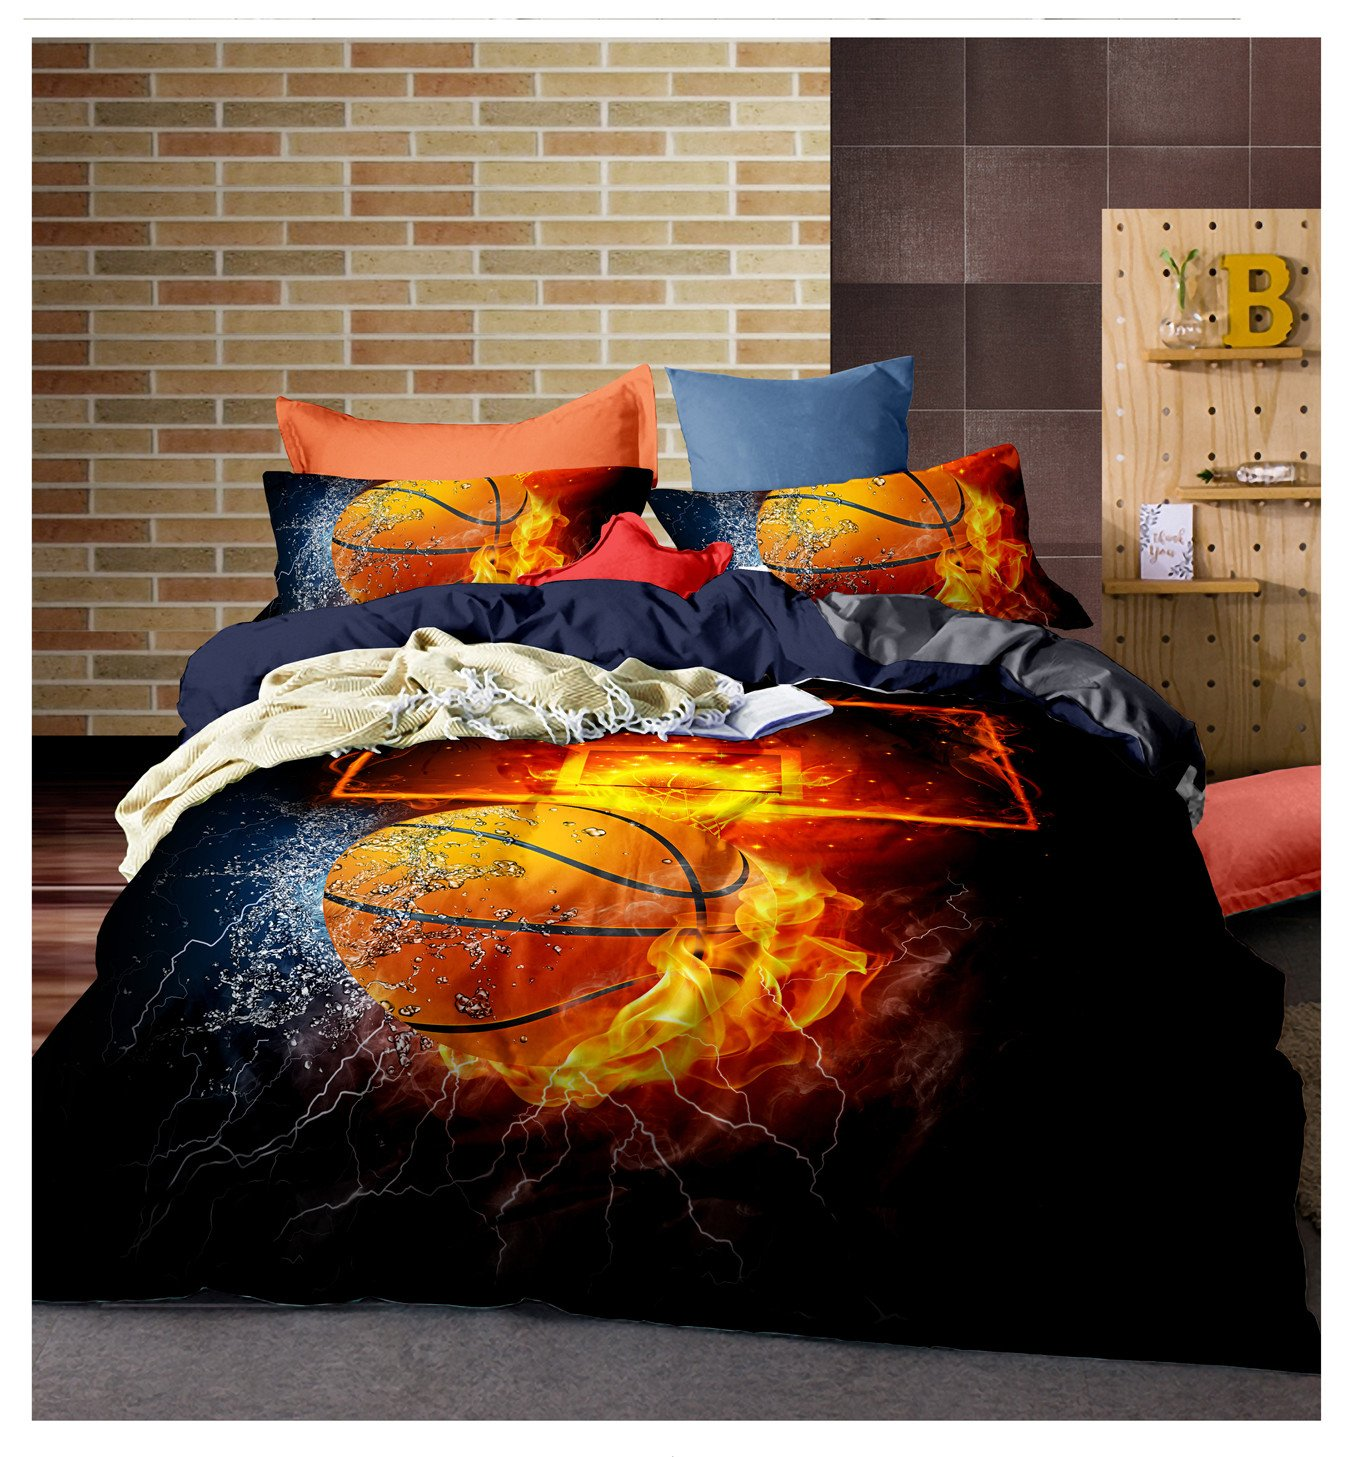 Lldaily 3D Sports Basketball Bedding Set for Teen Boys,Duvet Cover Sets with Pillowcases,Queen Size,3PCS,1 Duvet cover+2 pillow shams